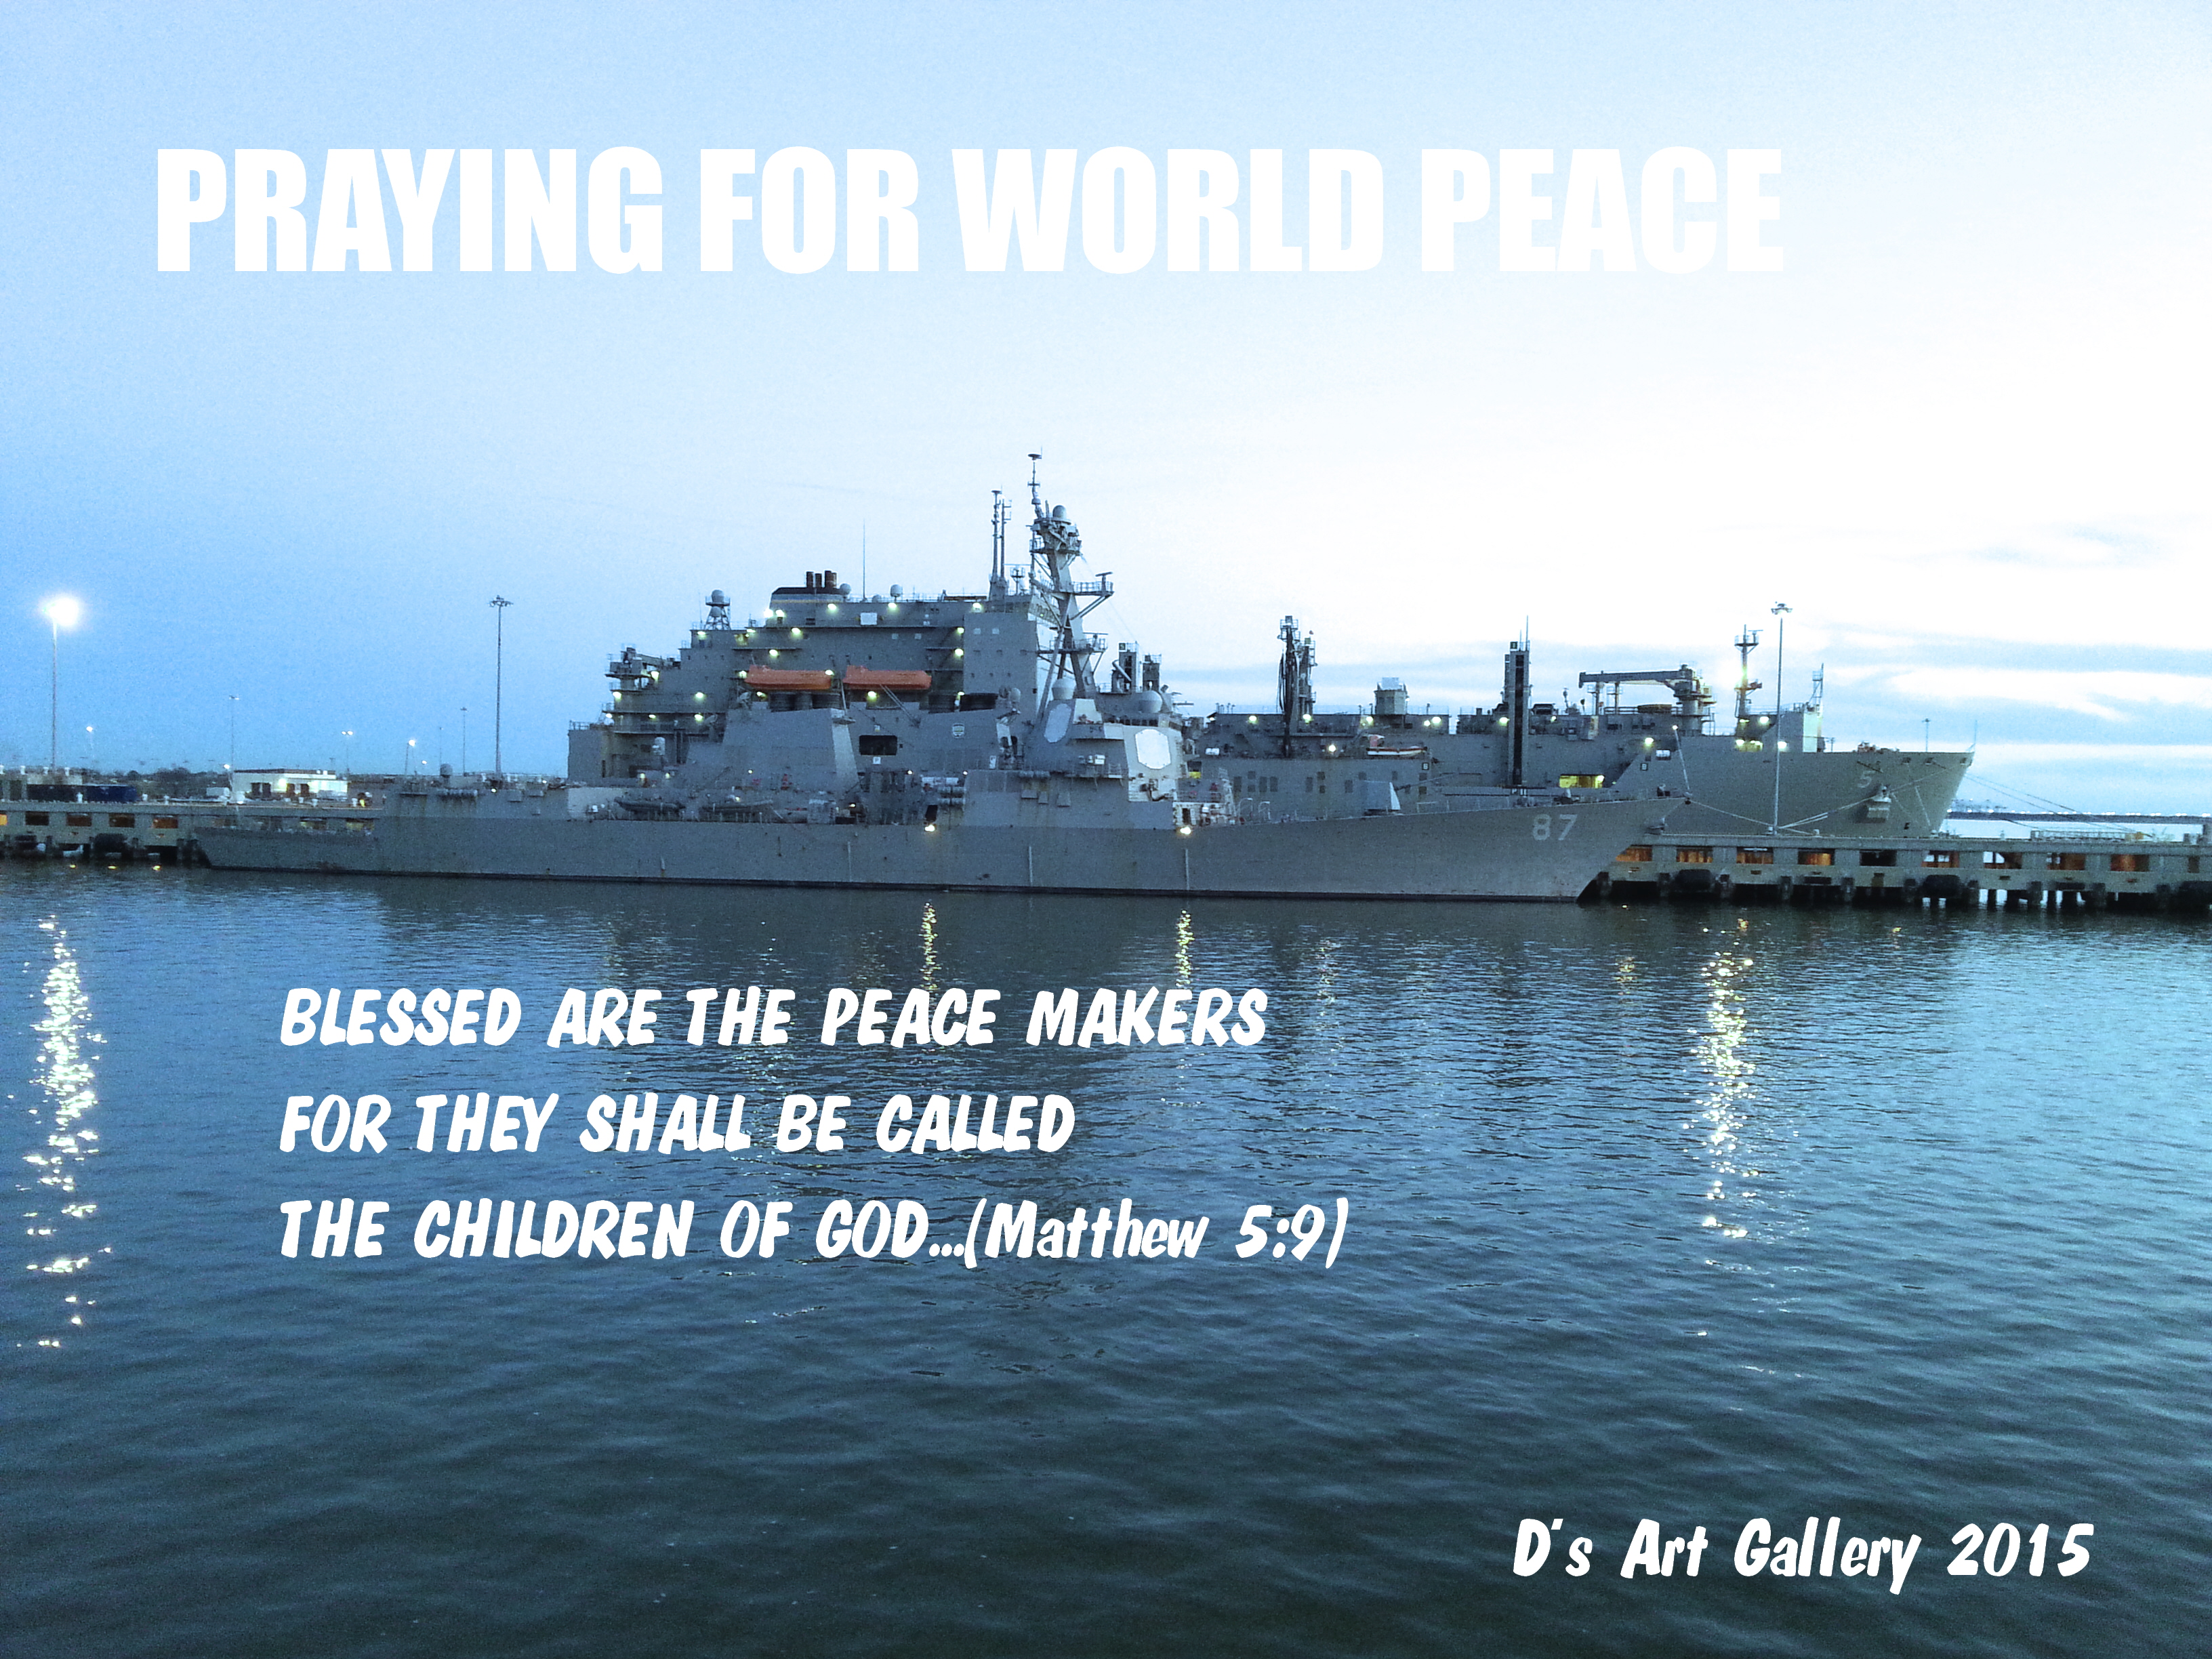 Ship of war helping to maintain peace in the world (Photo by Pastor Davis)